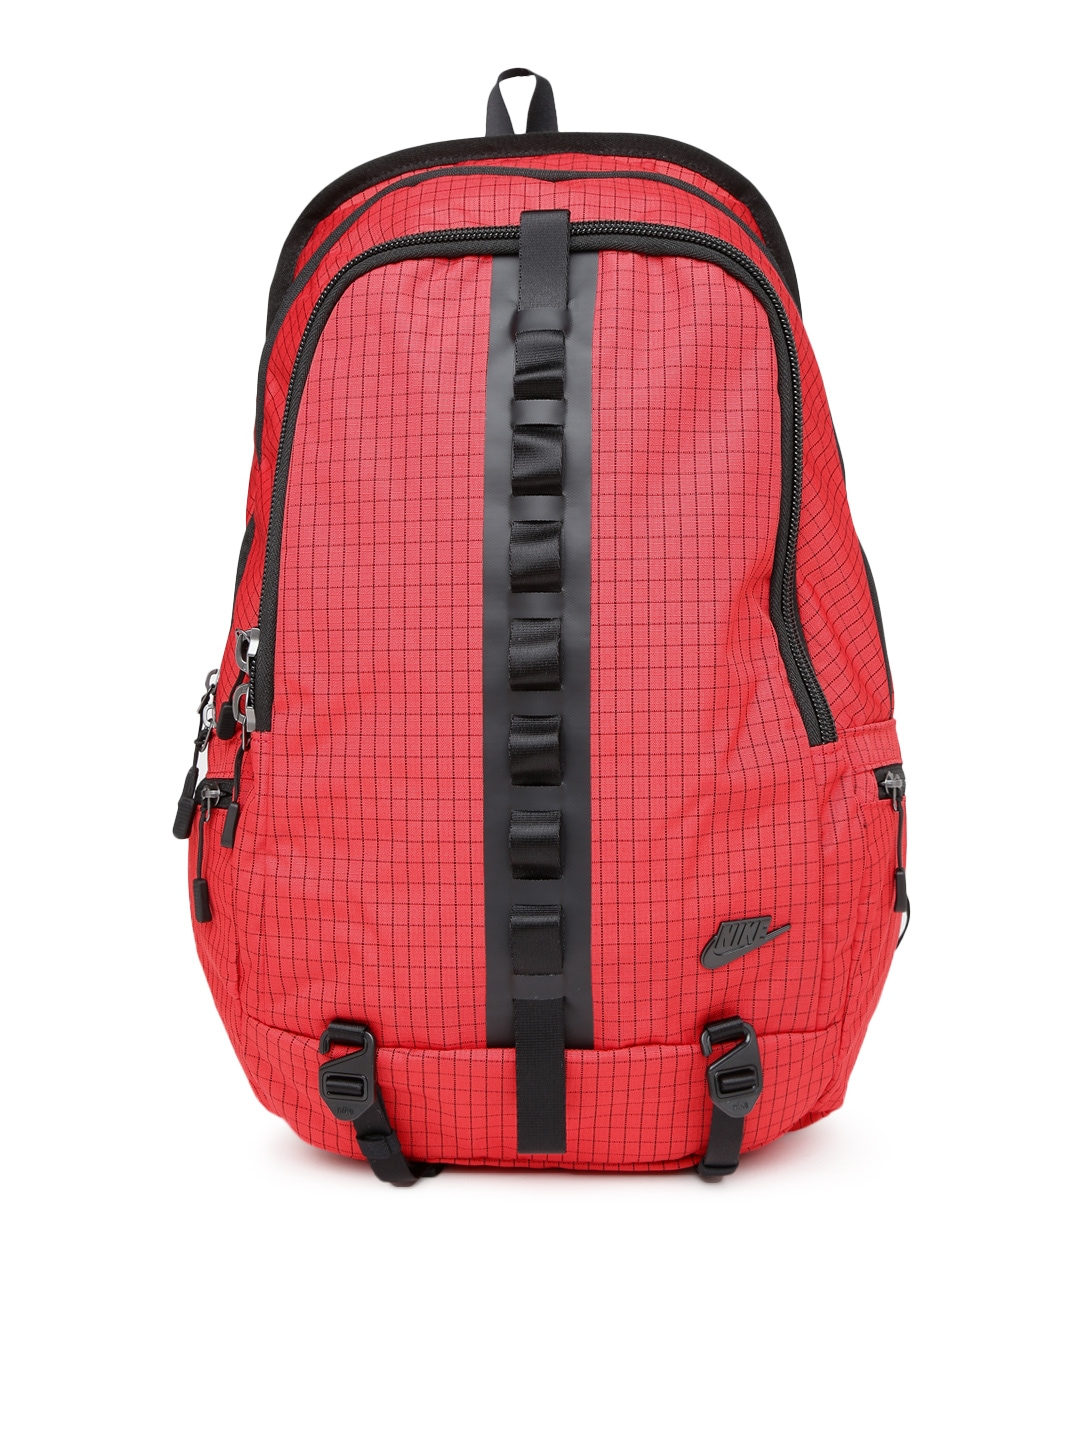 be3091d58c77 Nike ba5073-657 Women Red Karst Cascade Checked Backpack- Price in India